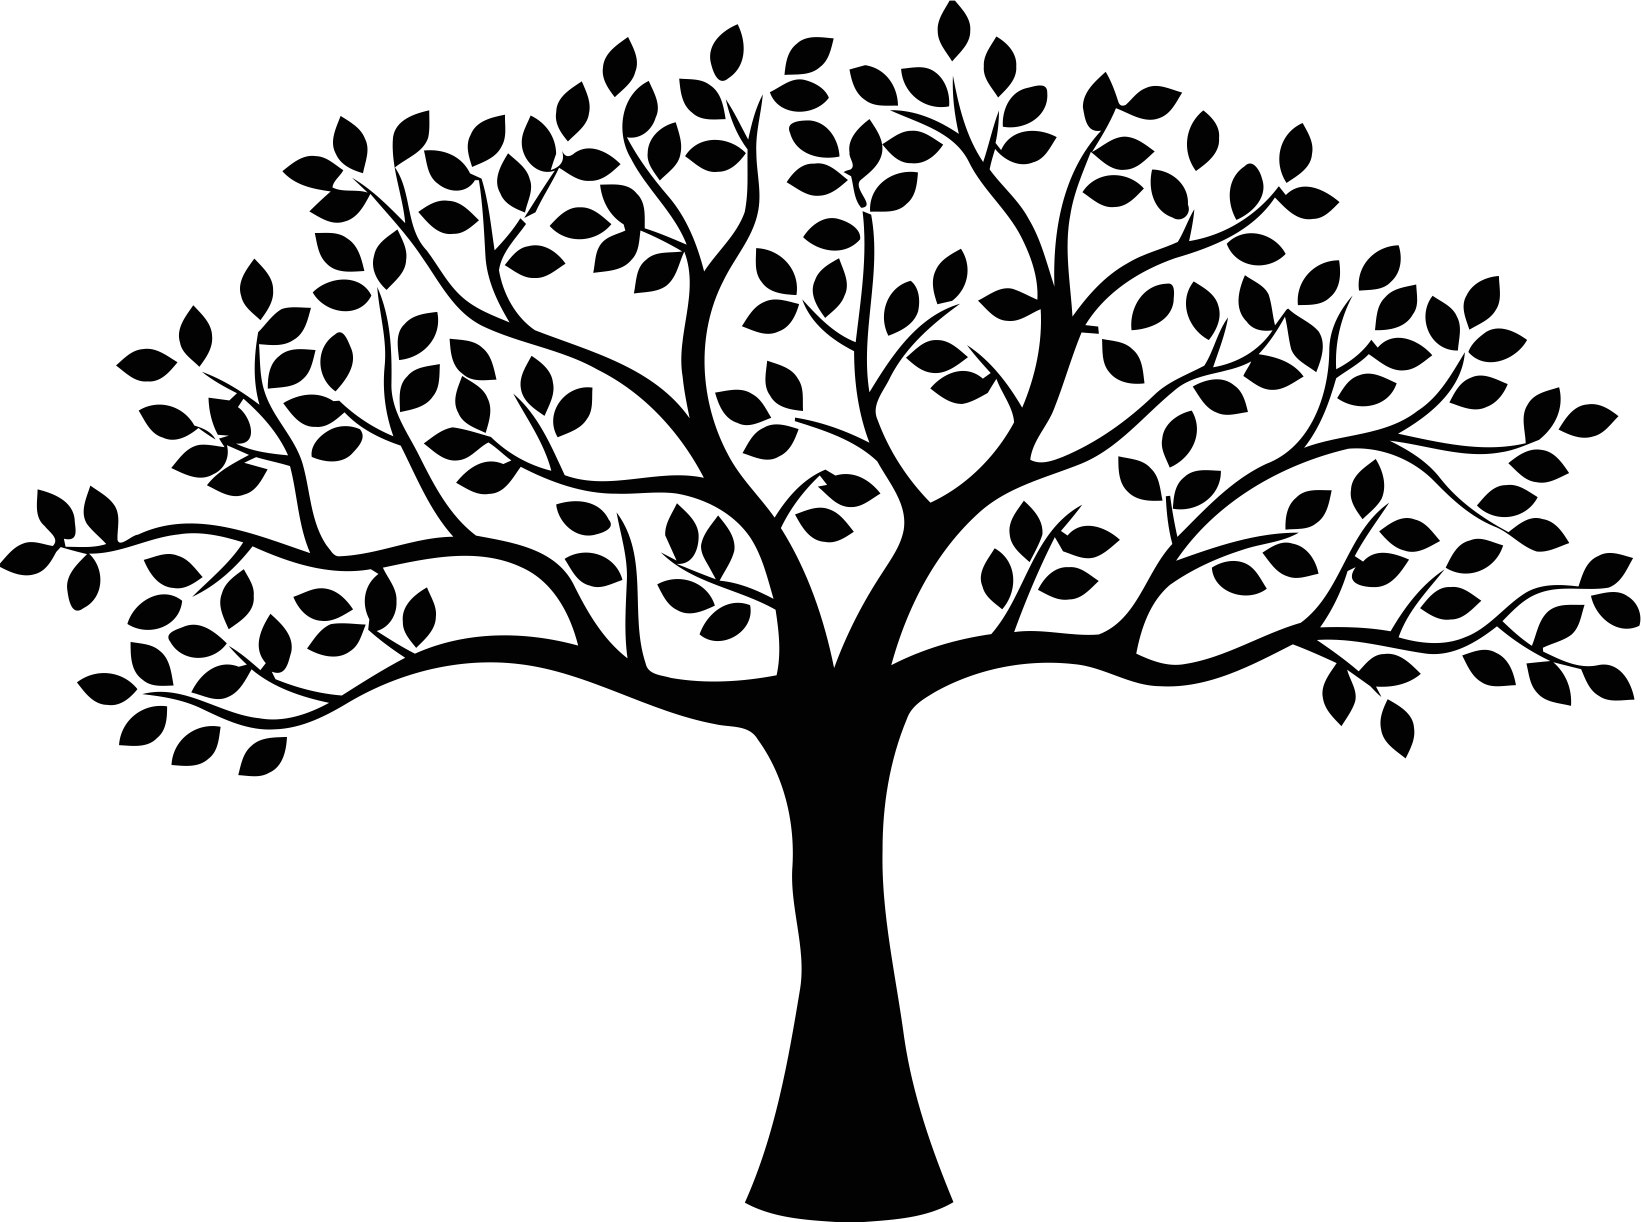 Decor Tree Free Vector Cdr Download 3axis Co